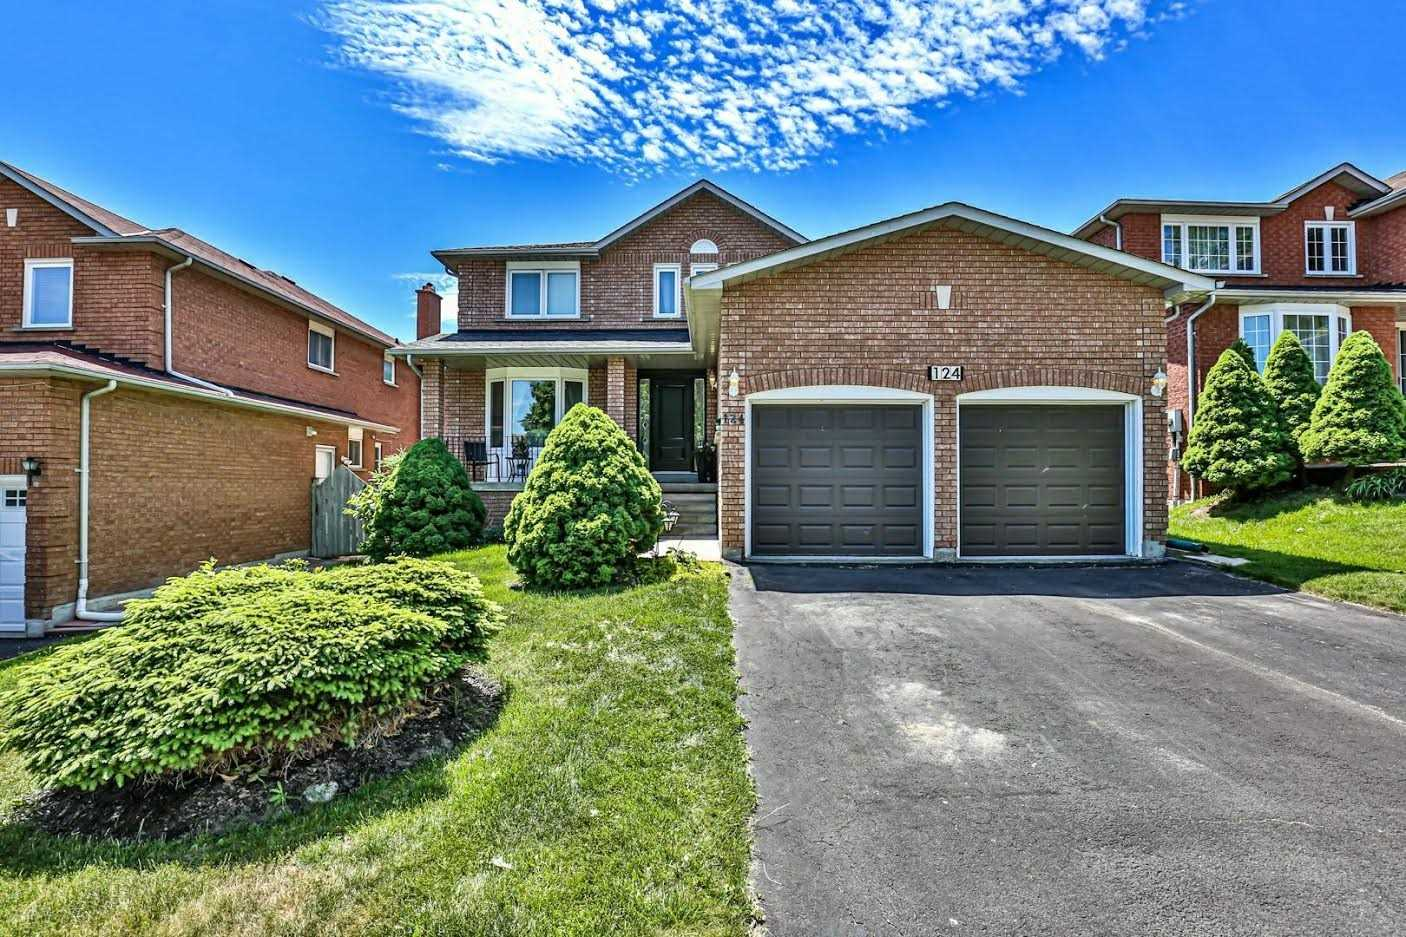 FEATURED LISTING: 124 Goldsmith Crescent Newmarket